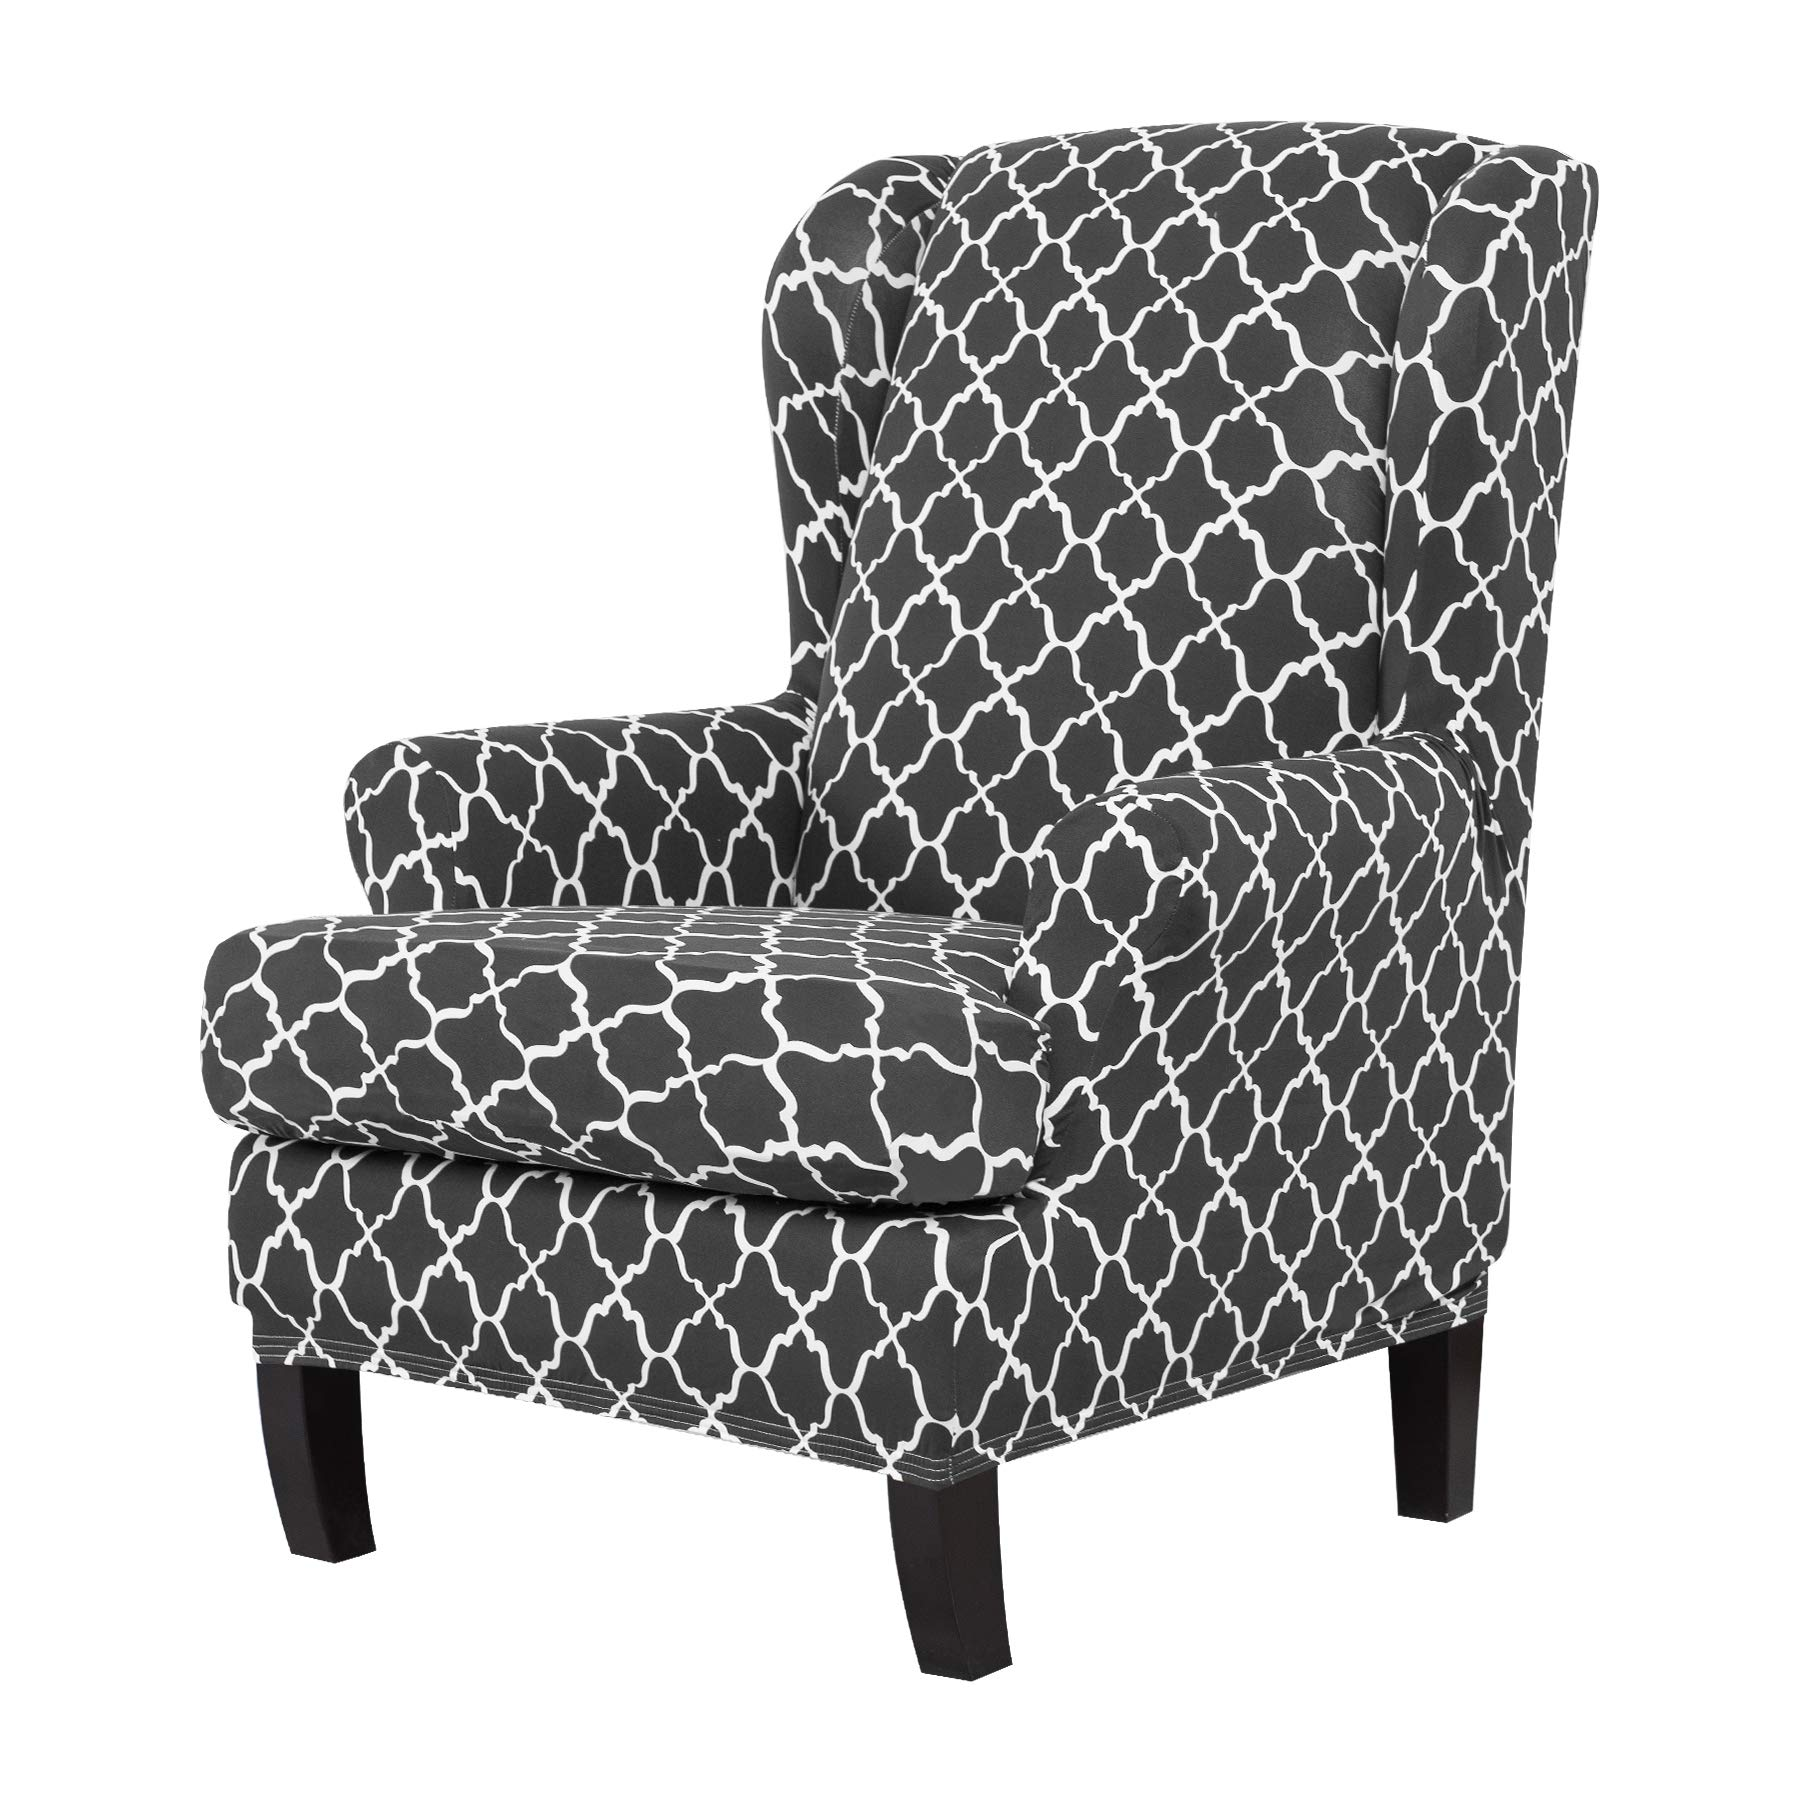 TIKAMI Wing Chair Slipcovers Stretch Wingback Armchair Cover 2-Piece Sofa Furniture Protector with Printing Pattern Spandex Fabirc(Gray)